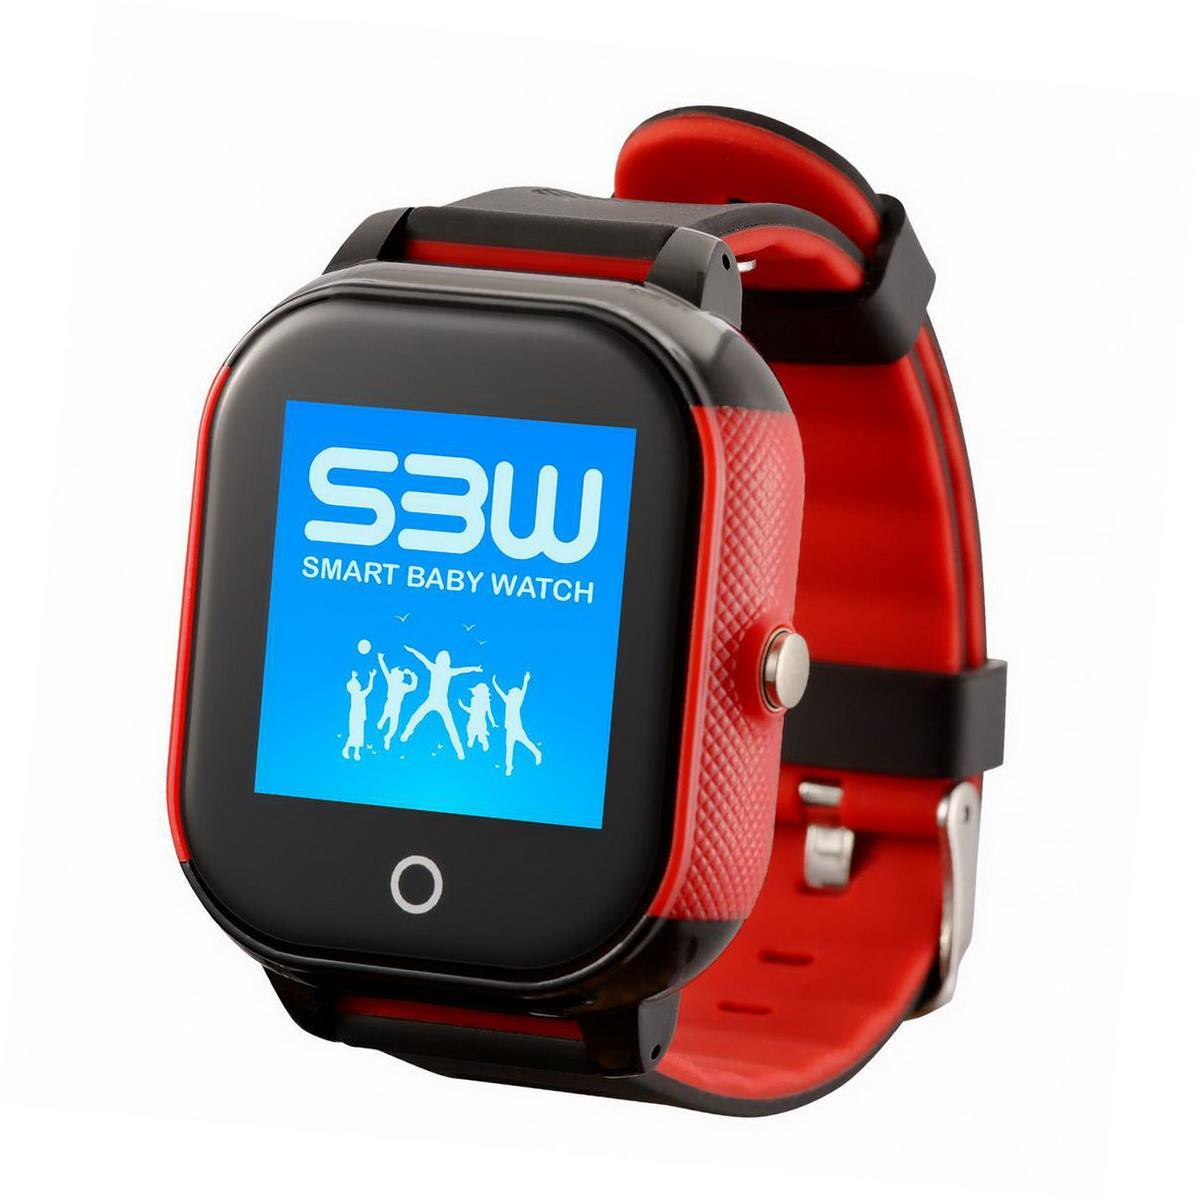 Каталог Детские часы Smart Baby Watch SBW WS smart_baby_watch_sbw_ws__103_.jpg